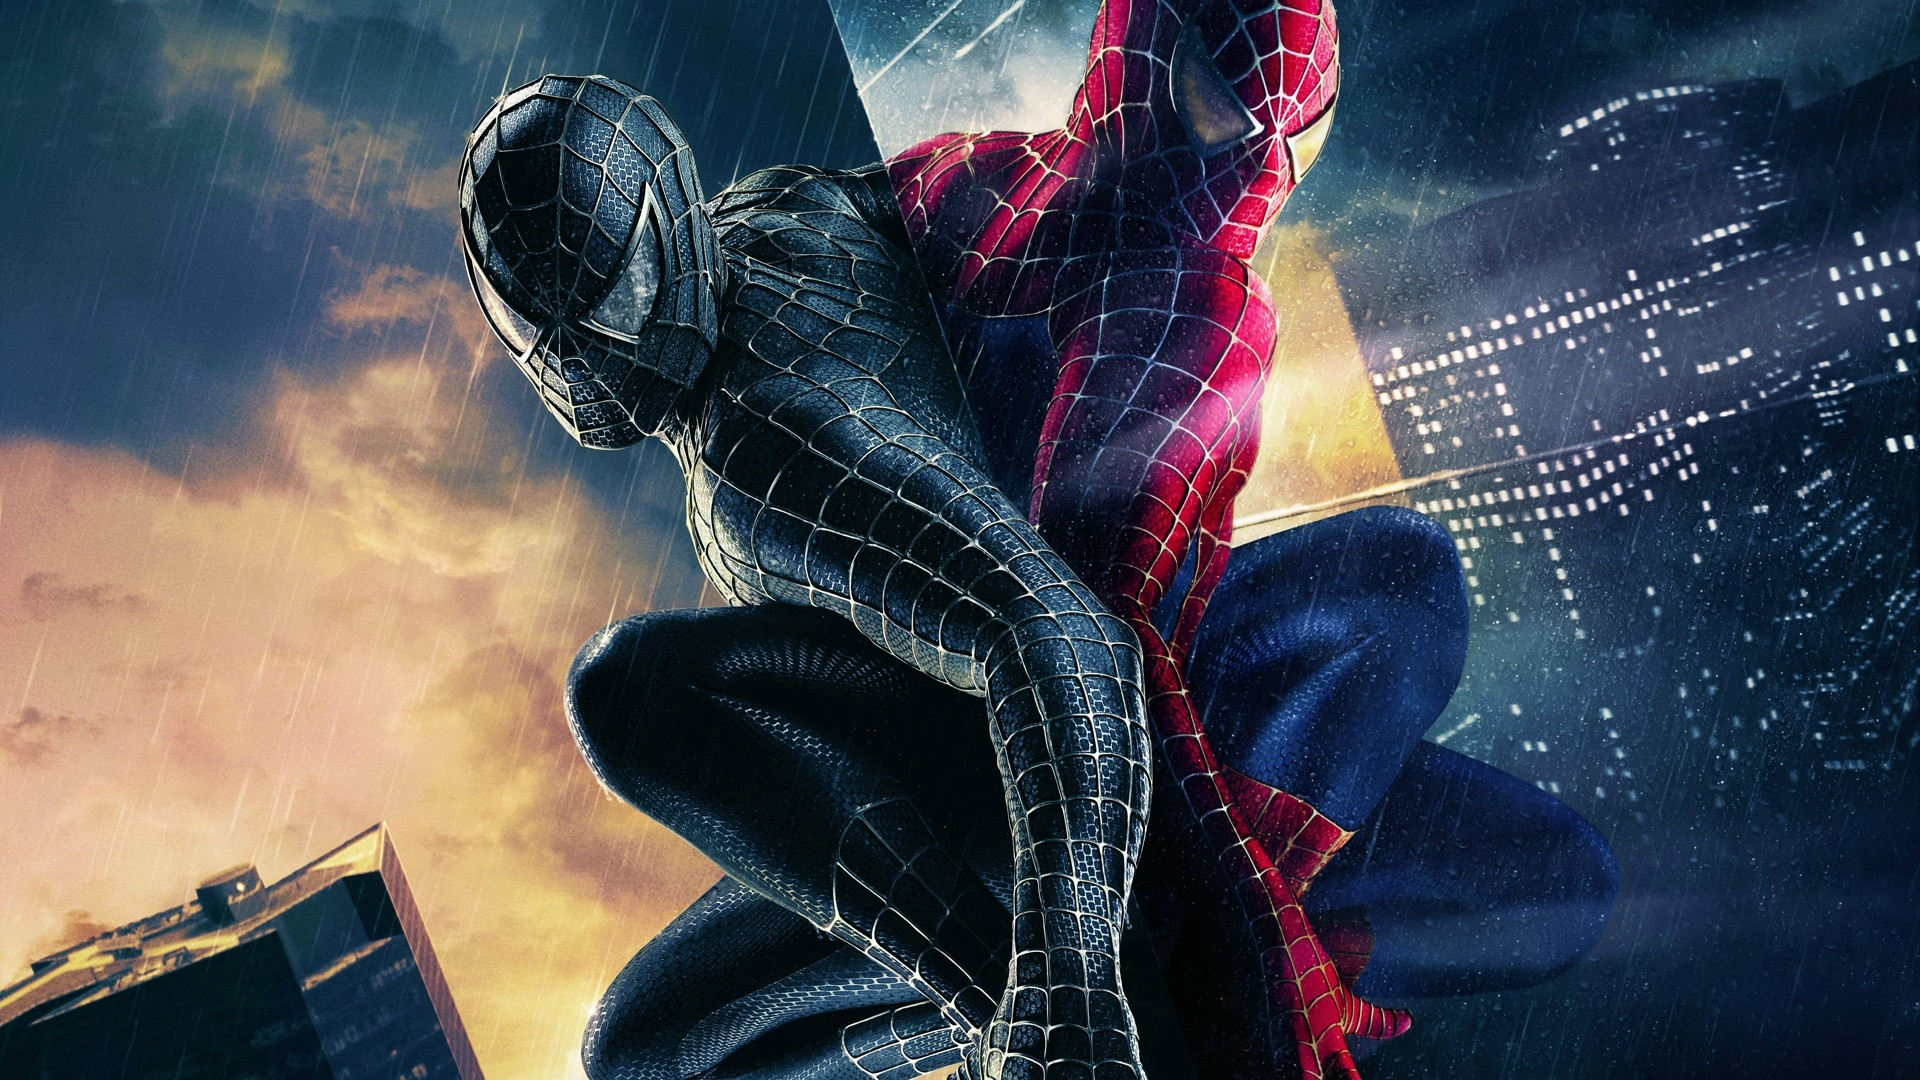 Spiderman pictures, spiderman wallpapers HD A7 - free full high definition 1920 x 1020 marvel Comics Superheroes desktop laptop mobile phone background wallpapers images downloads. Spiderman 1, Spiderman 2, Spiderman 3, Spiderman 4, Spiderman 5.